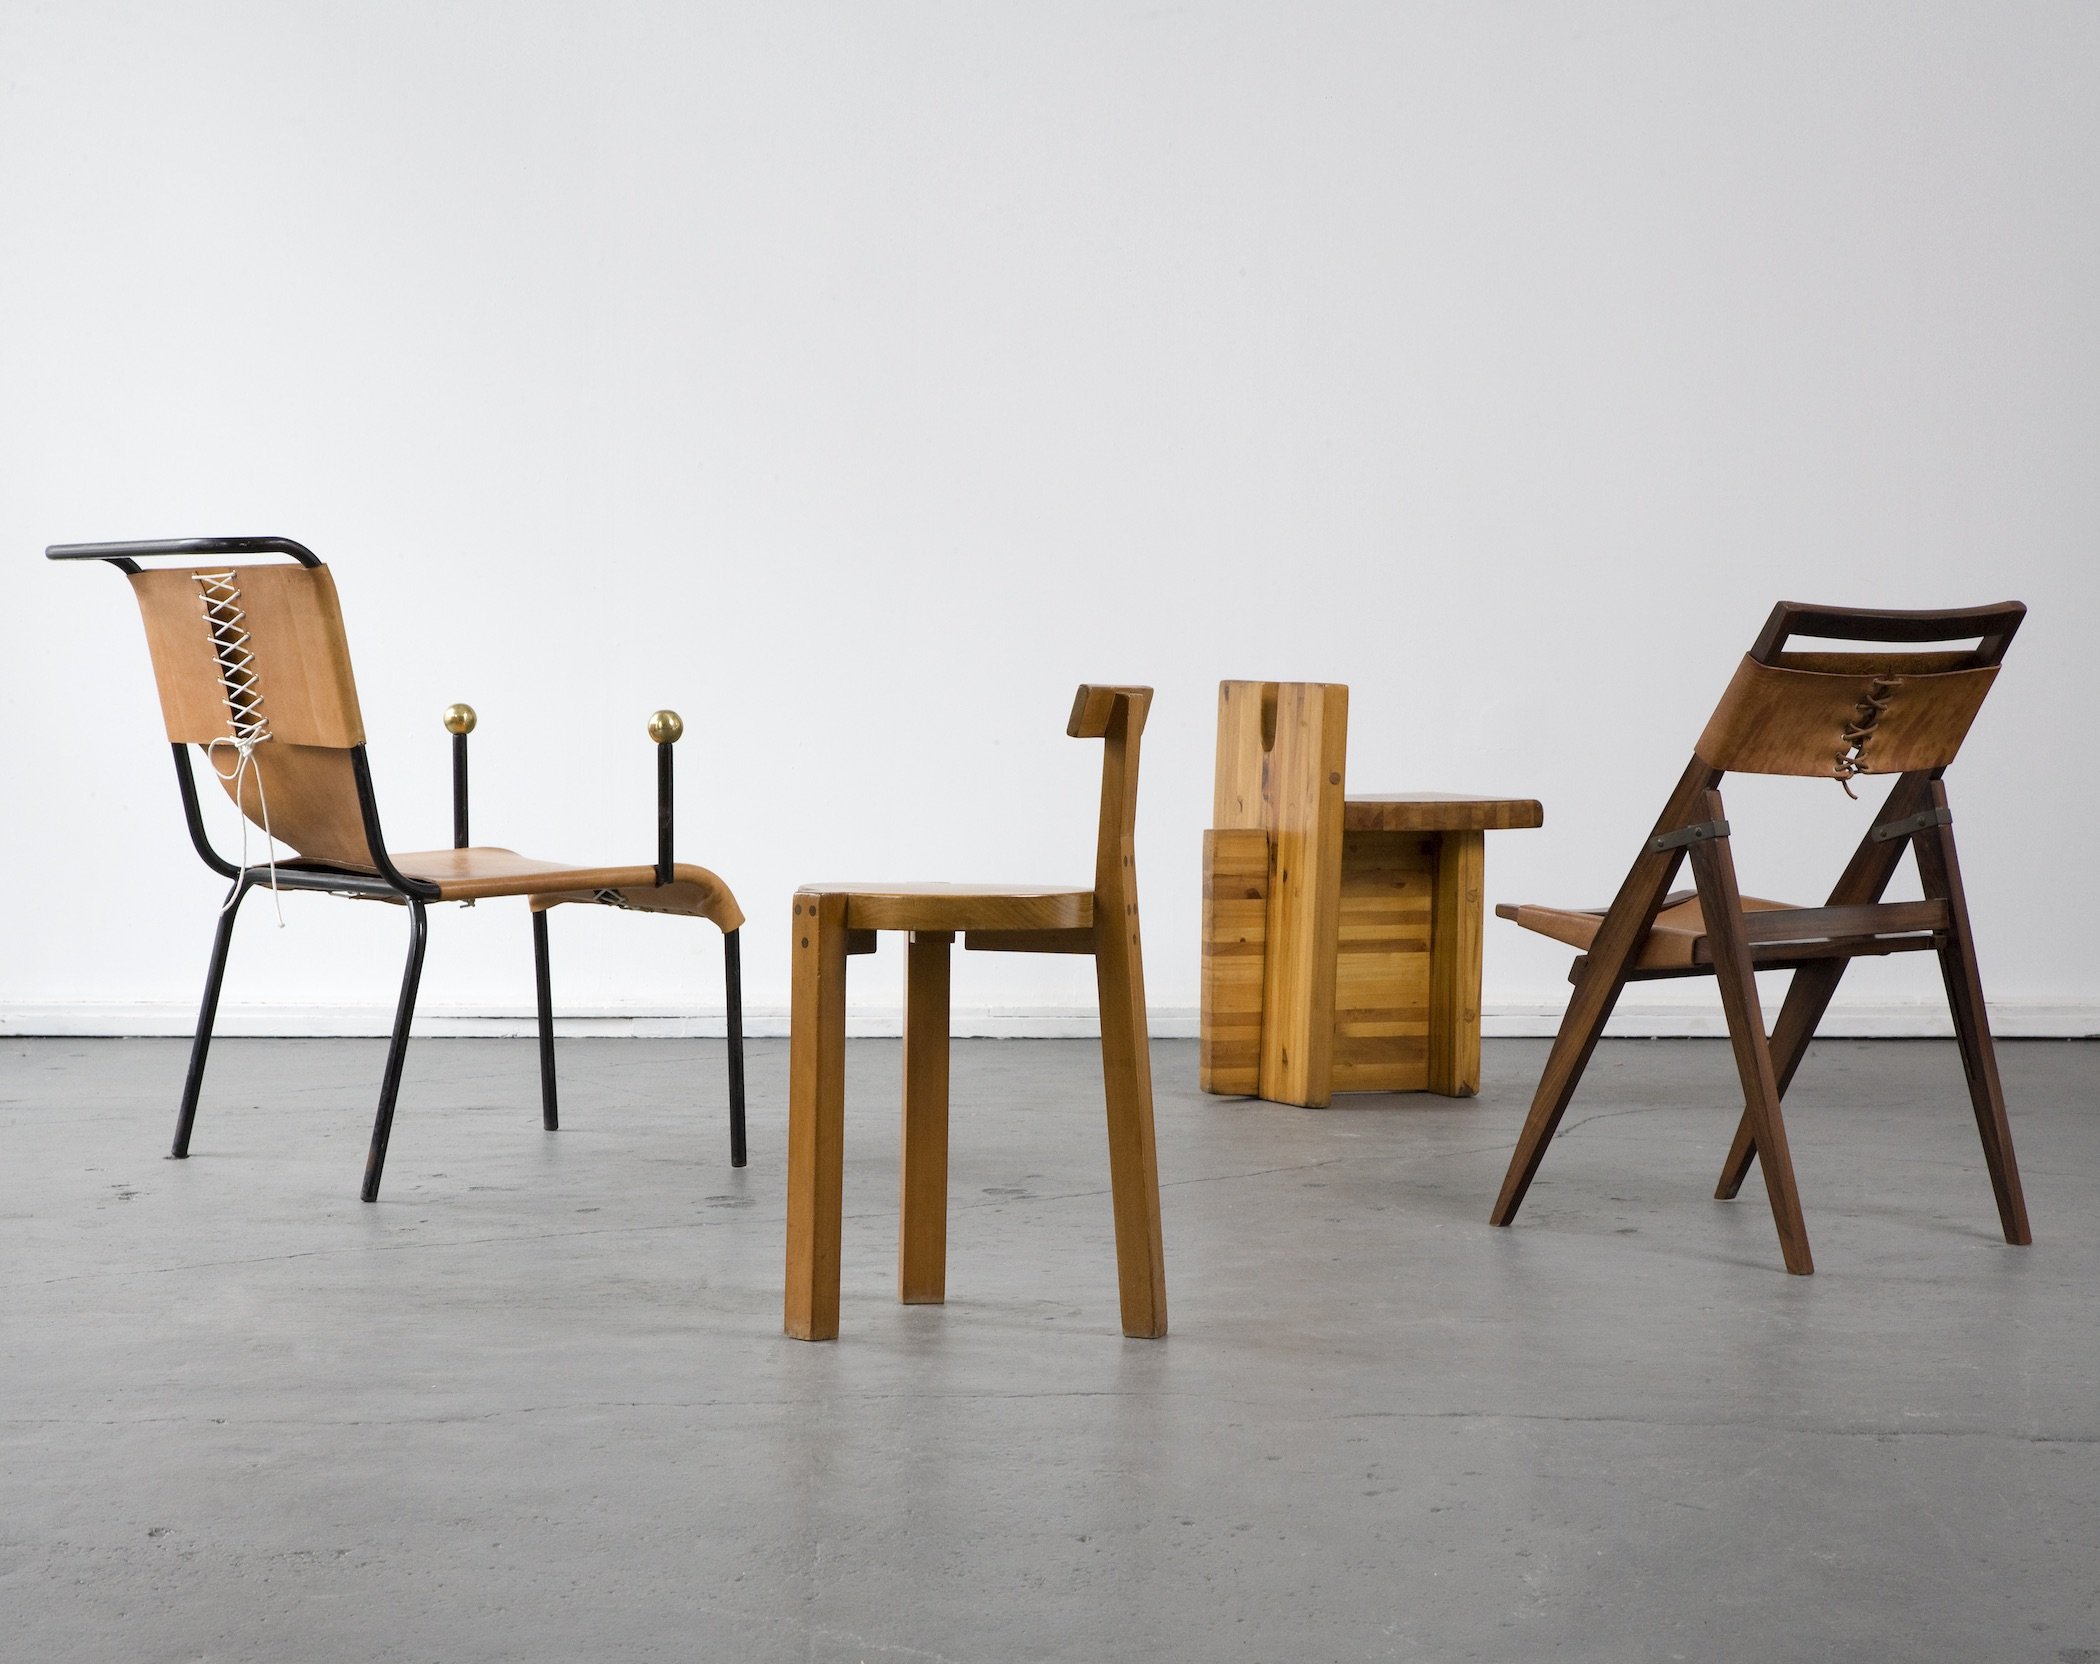 Brazilian Furniture Company. Grouping of chairs designed by Lina Bo Bardi,  Brazil between the 1950s and the 1980s